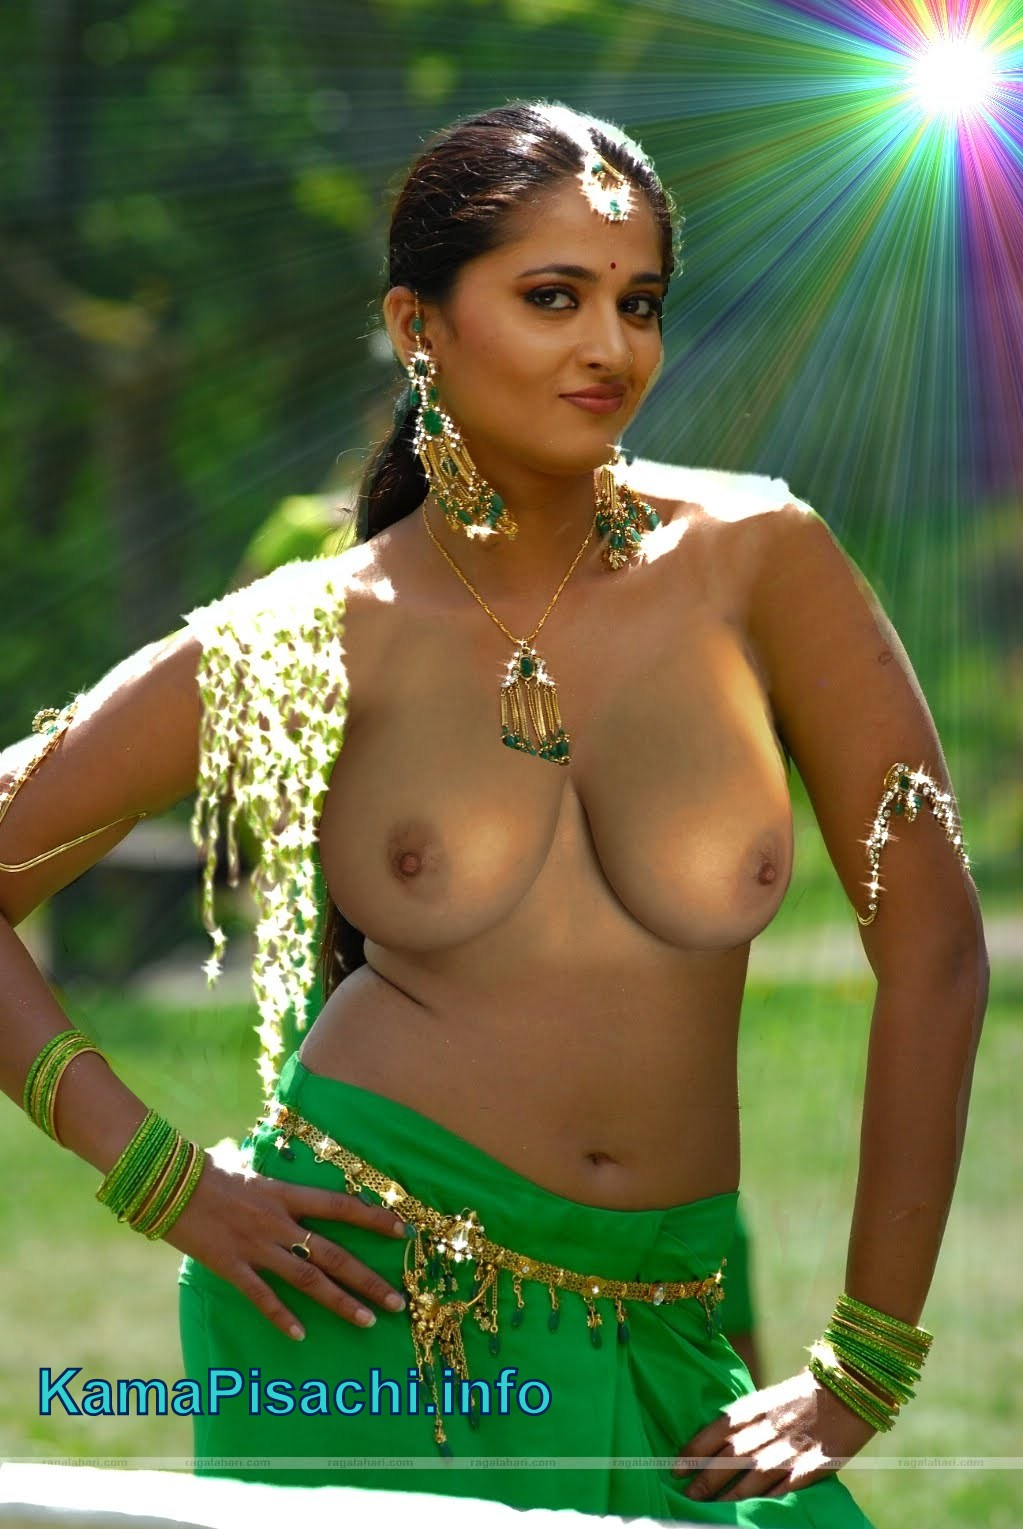 Kamapisachi Hot Girls Actress Bollywood Amrita Rao Nude Beach